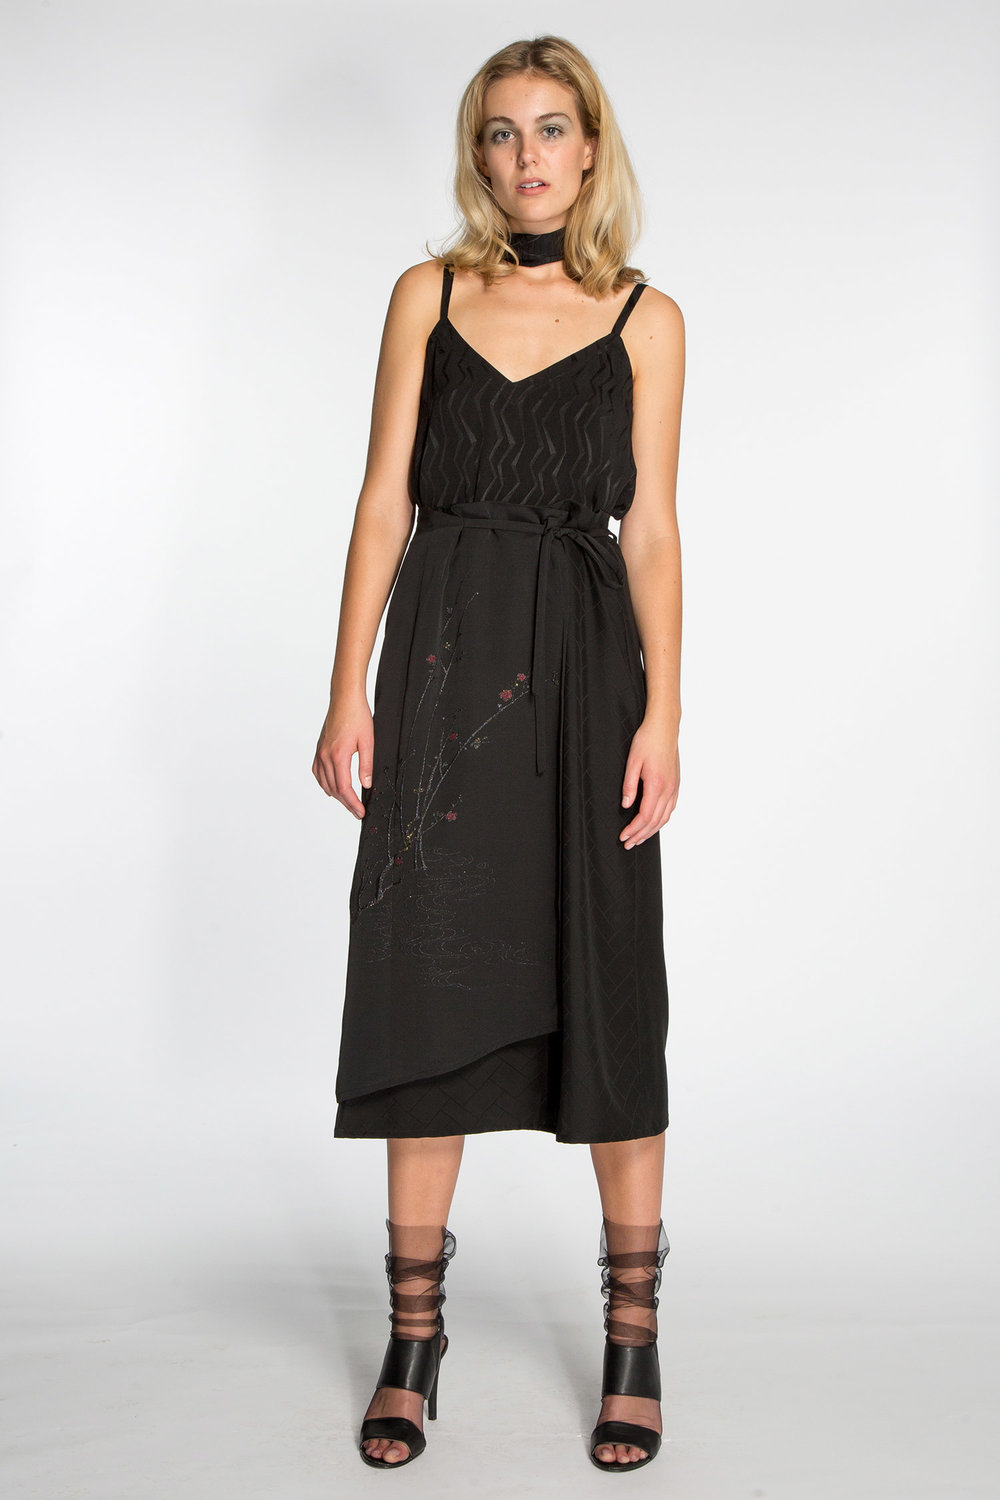 Look5-camisole-wrap-skirt-8-48.jpg